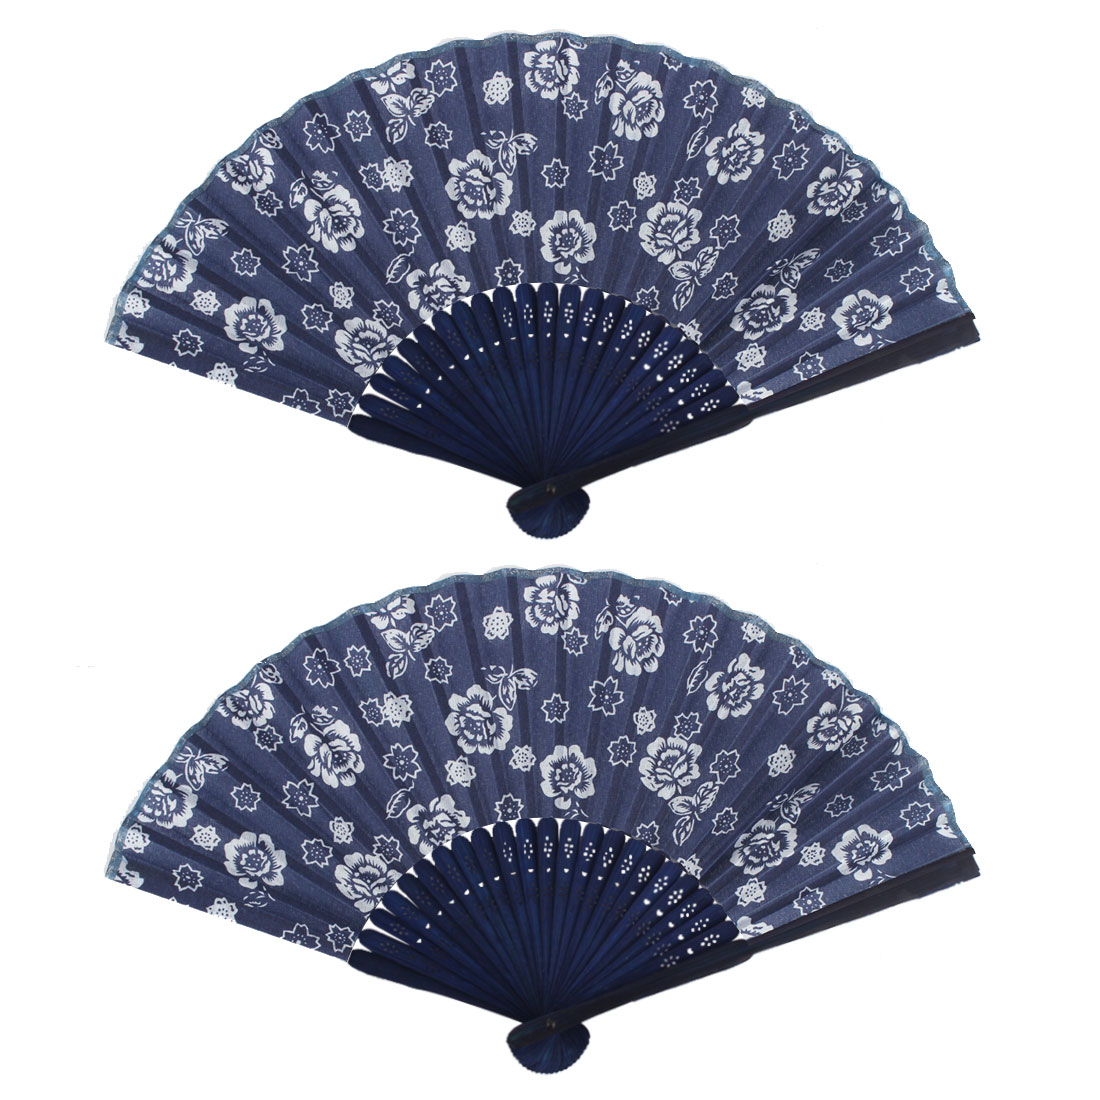 Party Dancing Peony Pattern Exquisite Vintage Decorations Folding Fan 2 PCS